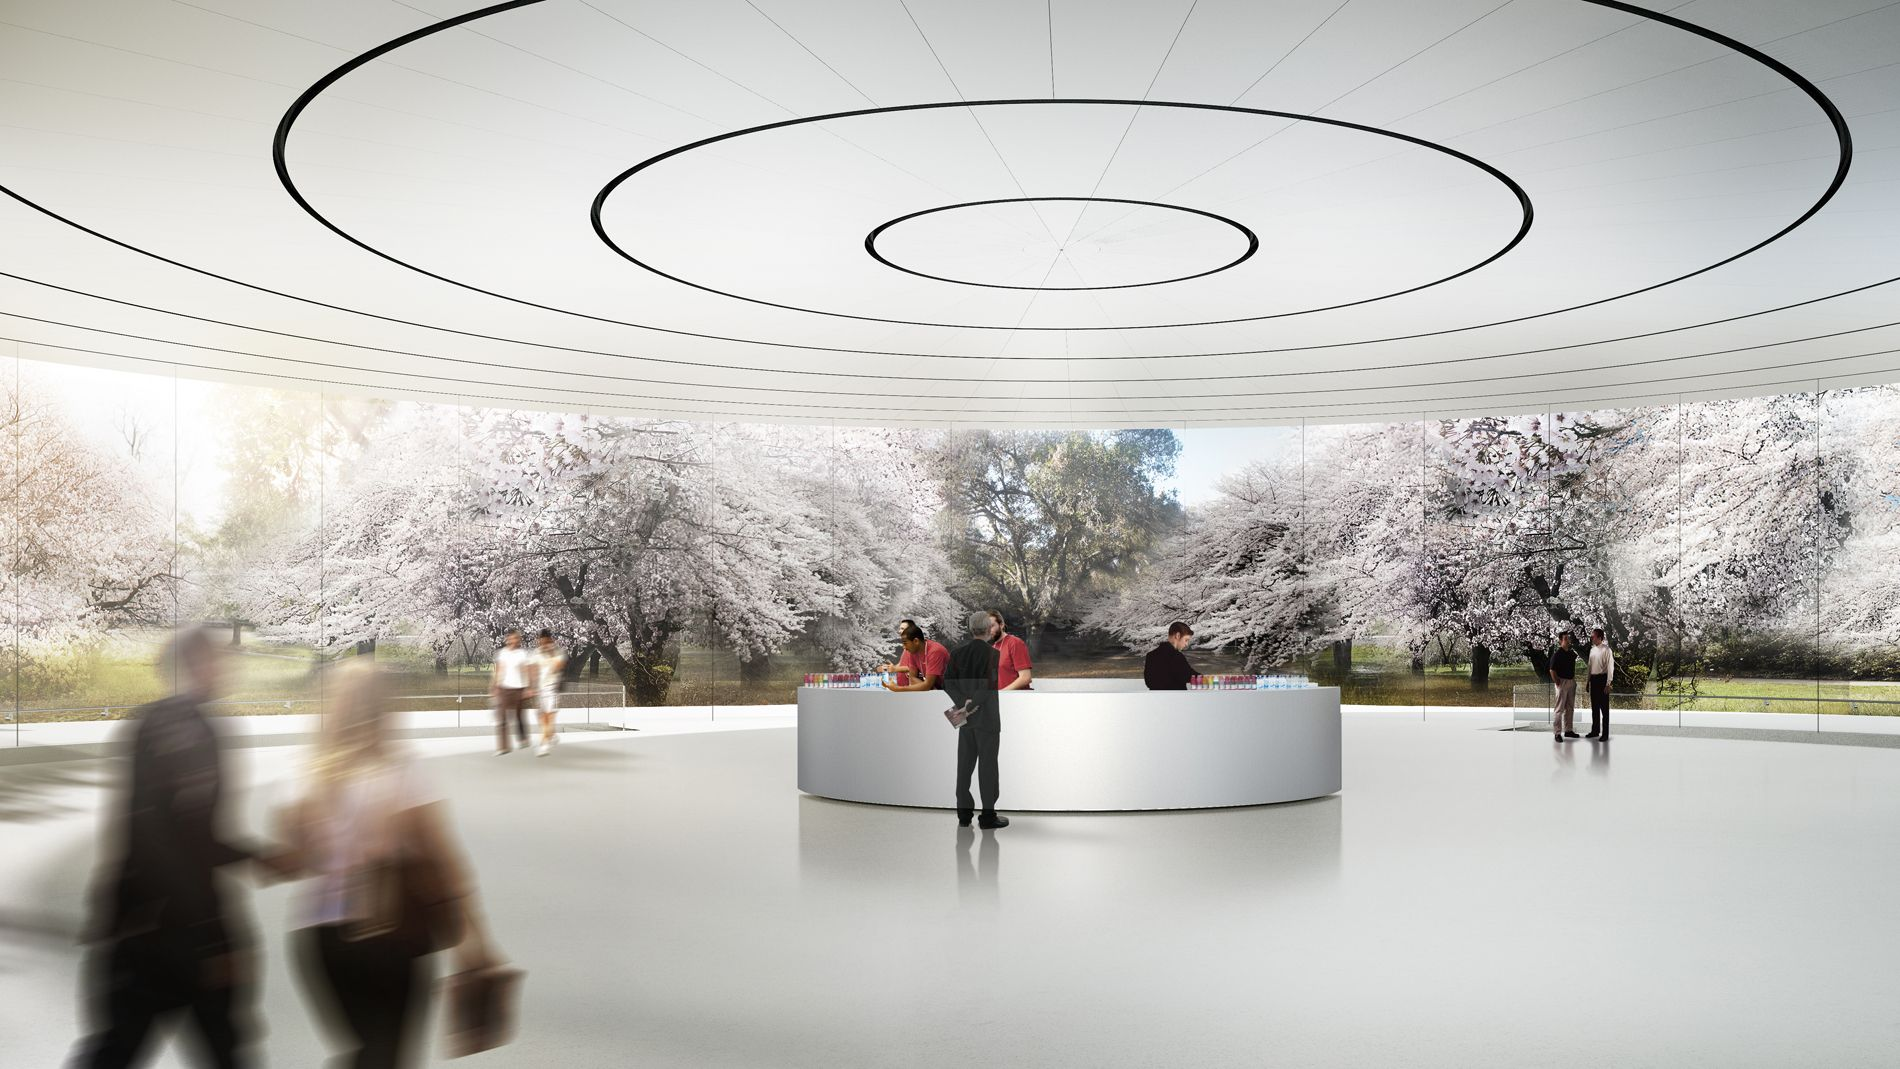 Photos and new details reveal the development of Apple Campus 2 and its product launch Theatre in Cupertino, California.